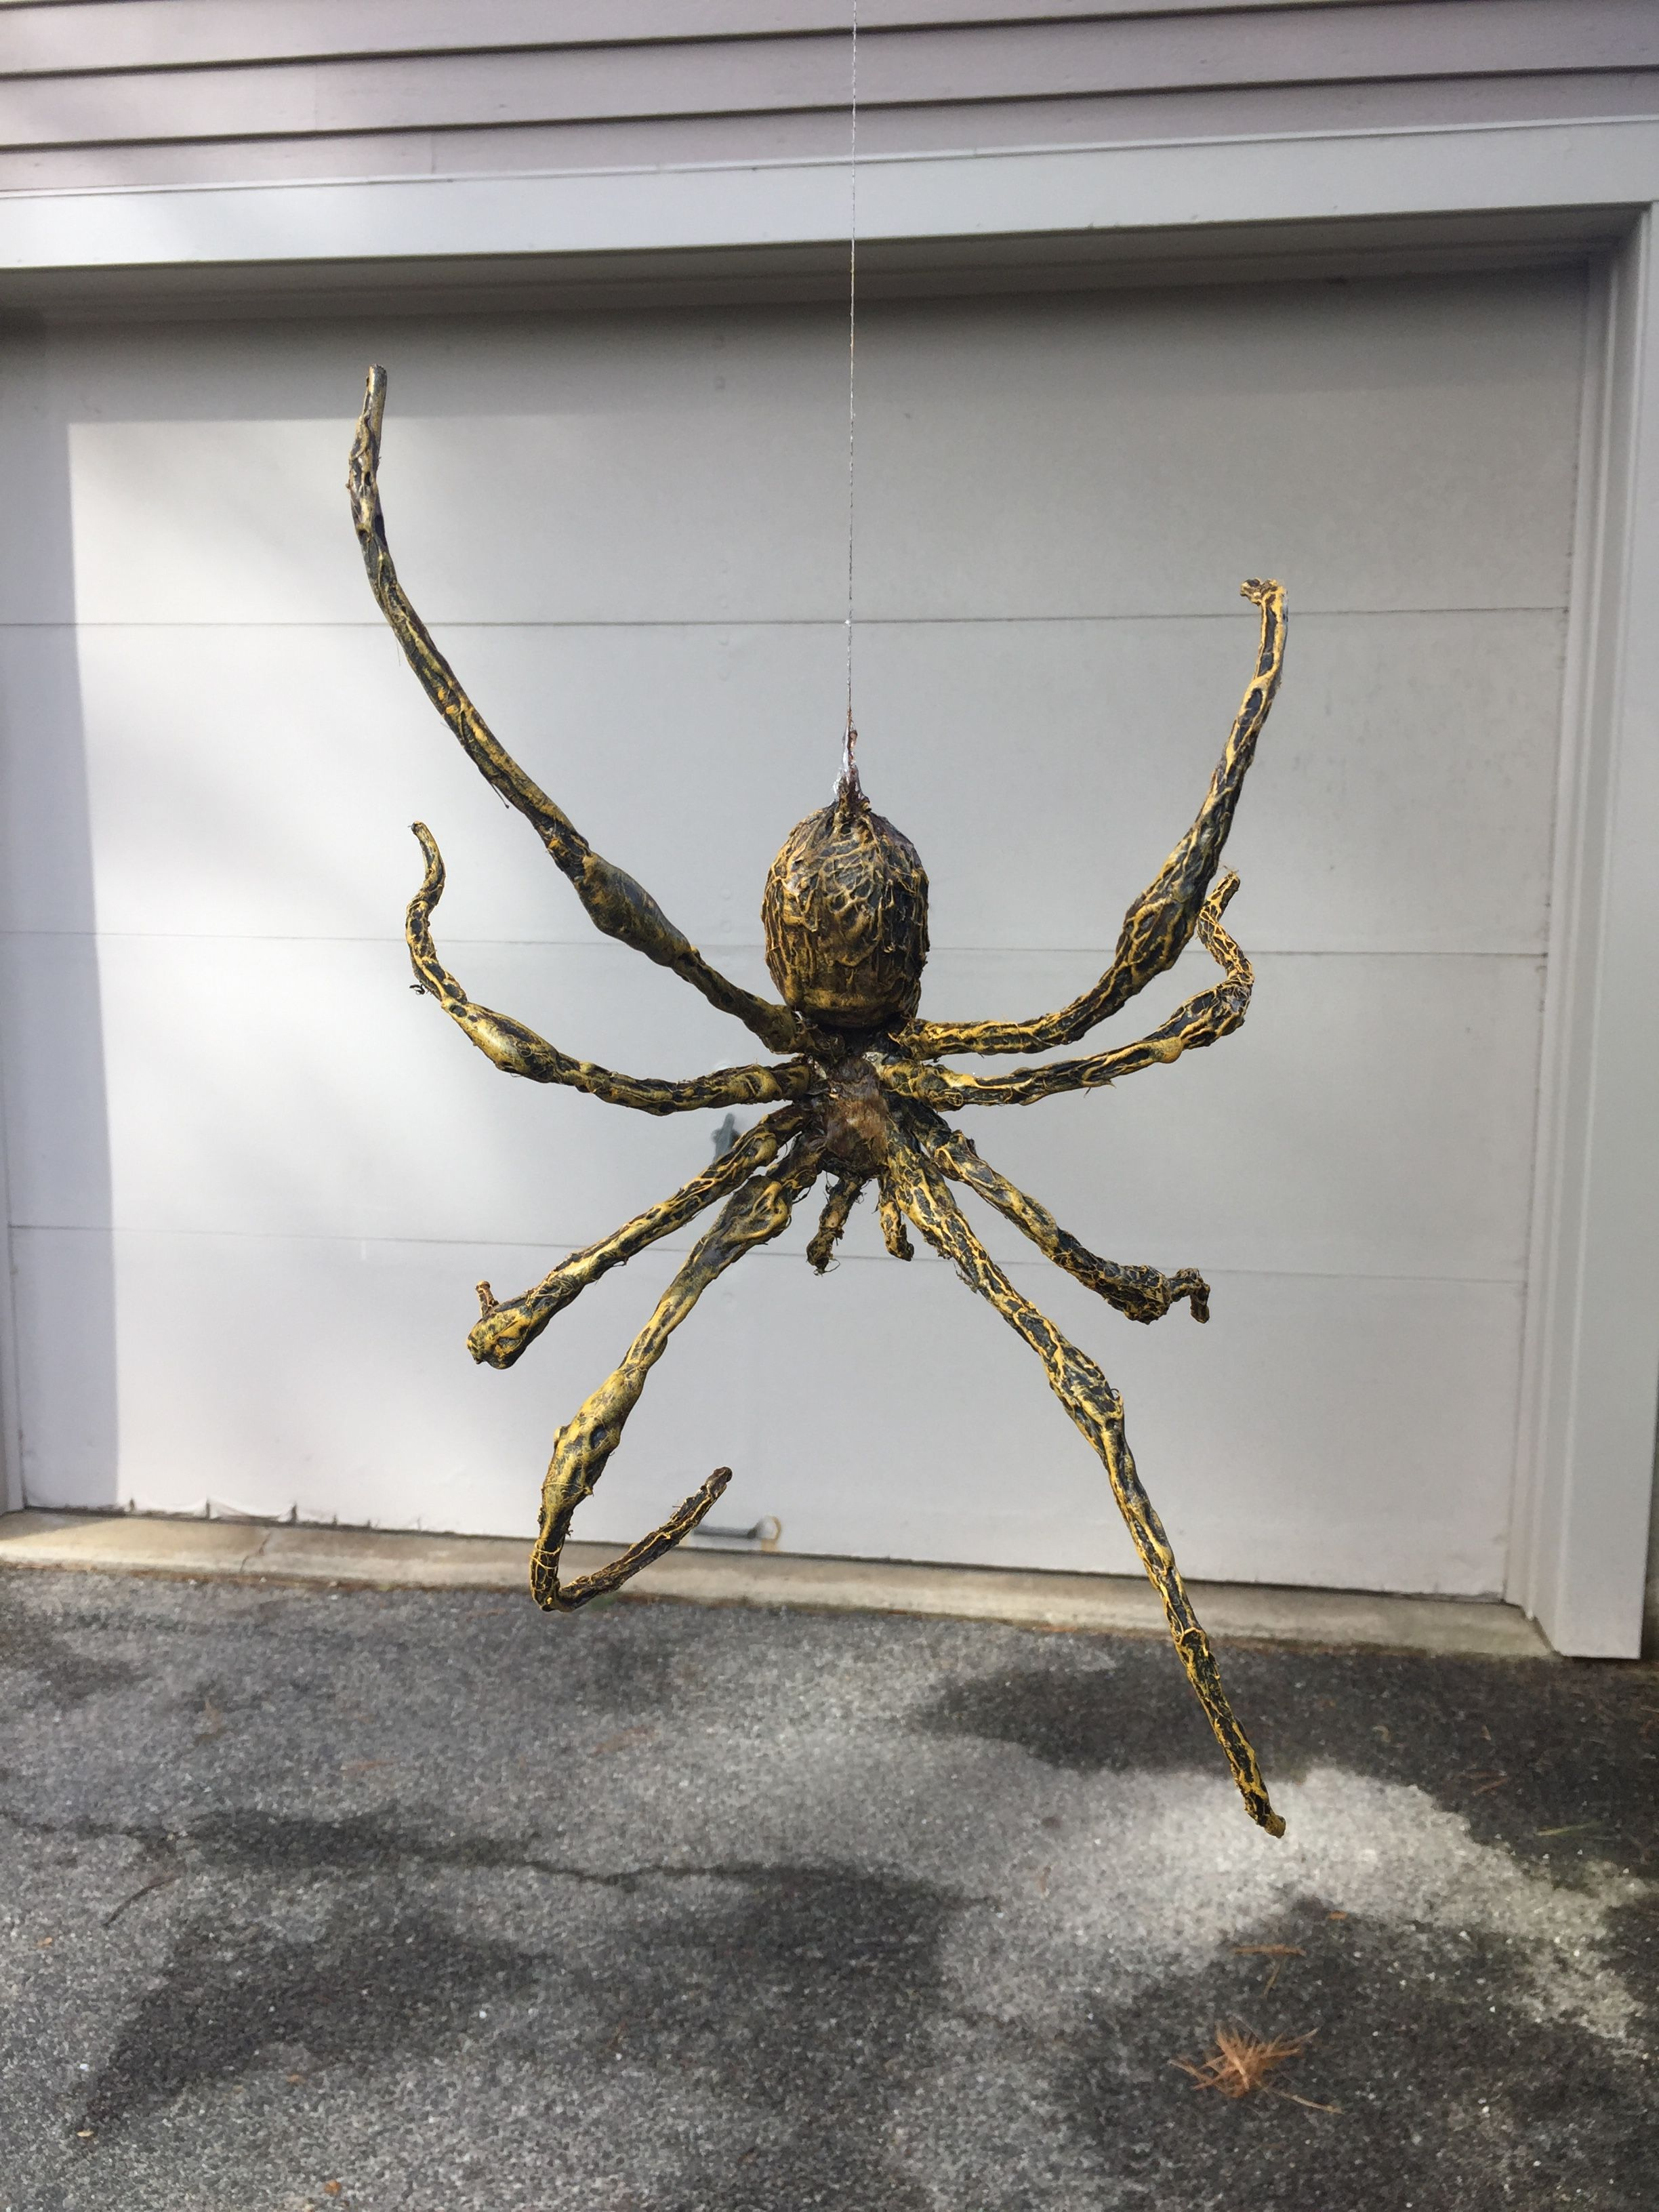 Easy Diy Hanging Spider Made From Aluminum Foil And Wire Armature